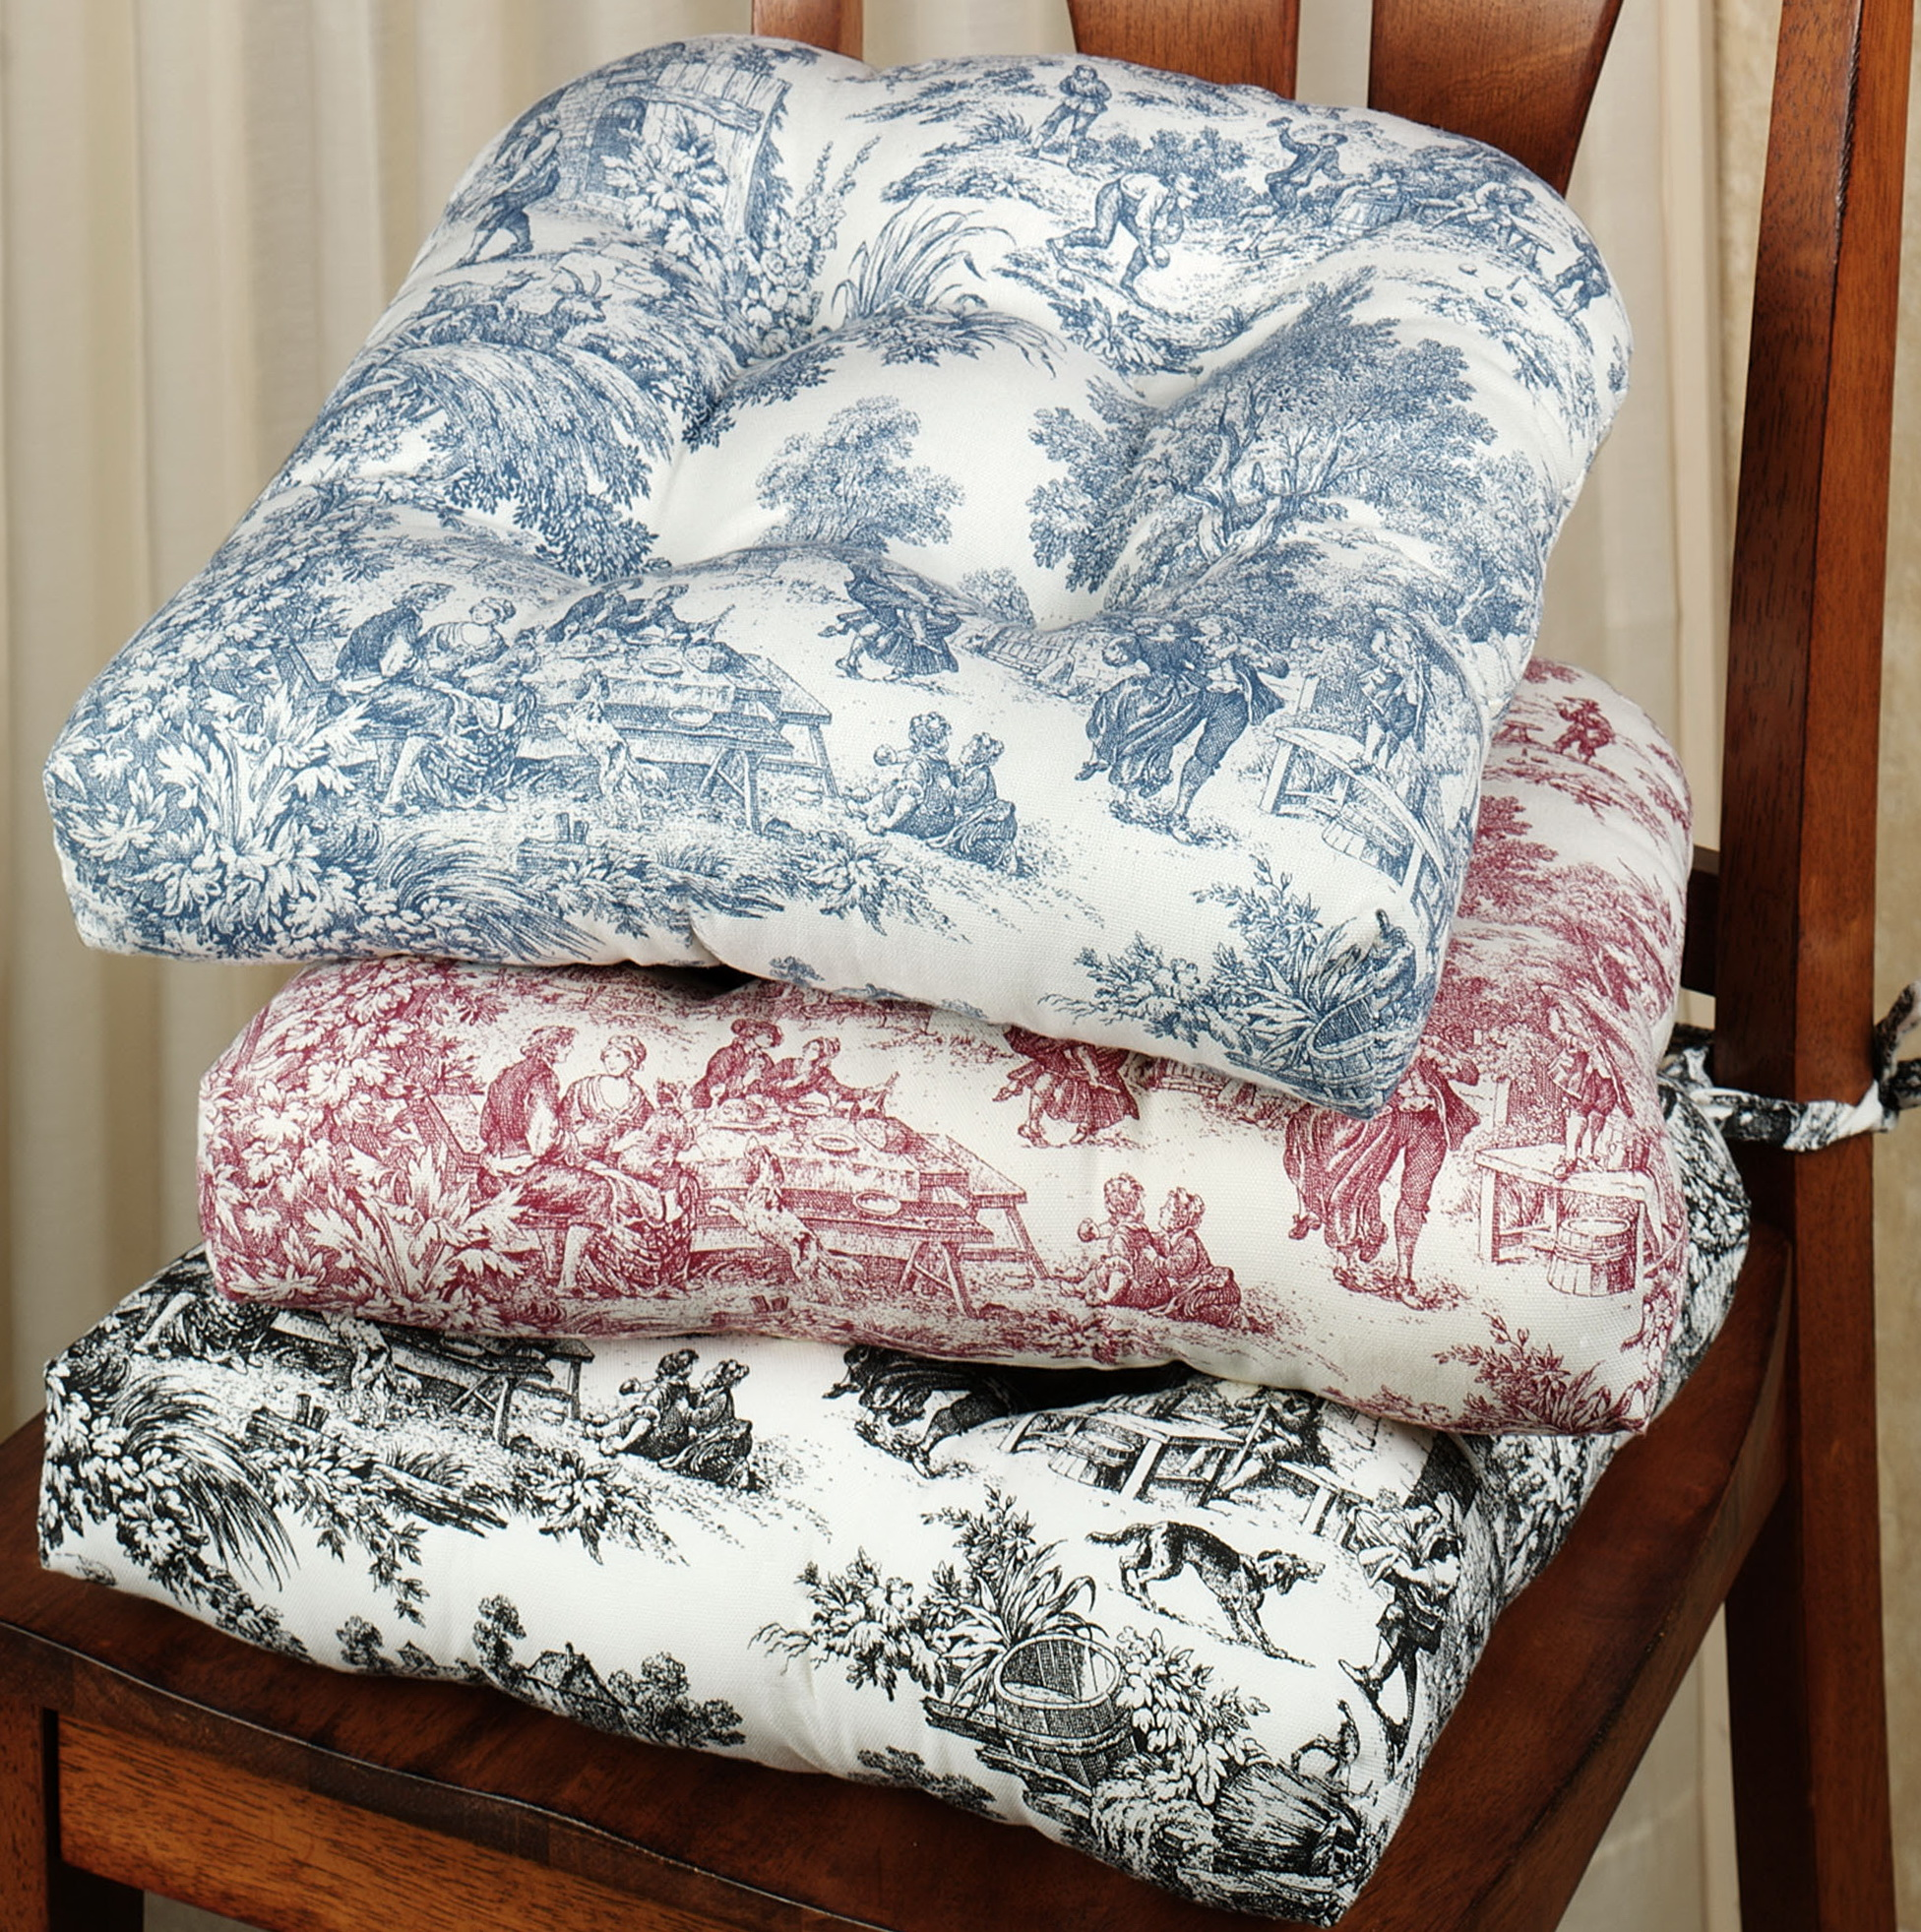 Target Chair Cushions Target Seat Cushions Indoor Home Design Ideas